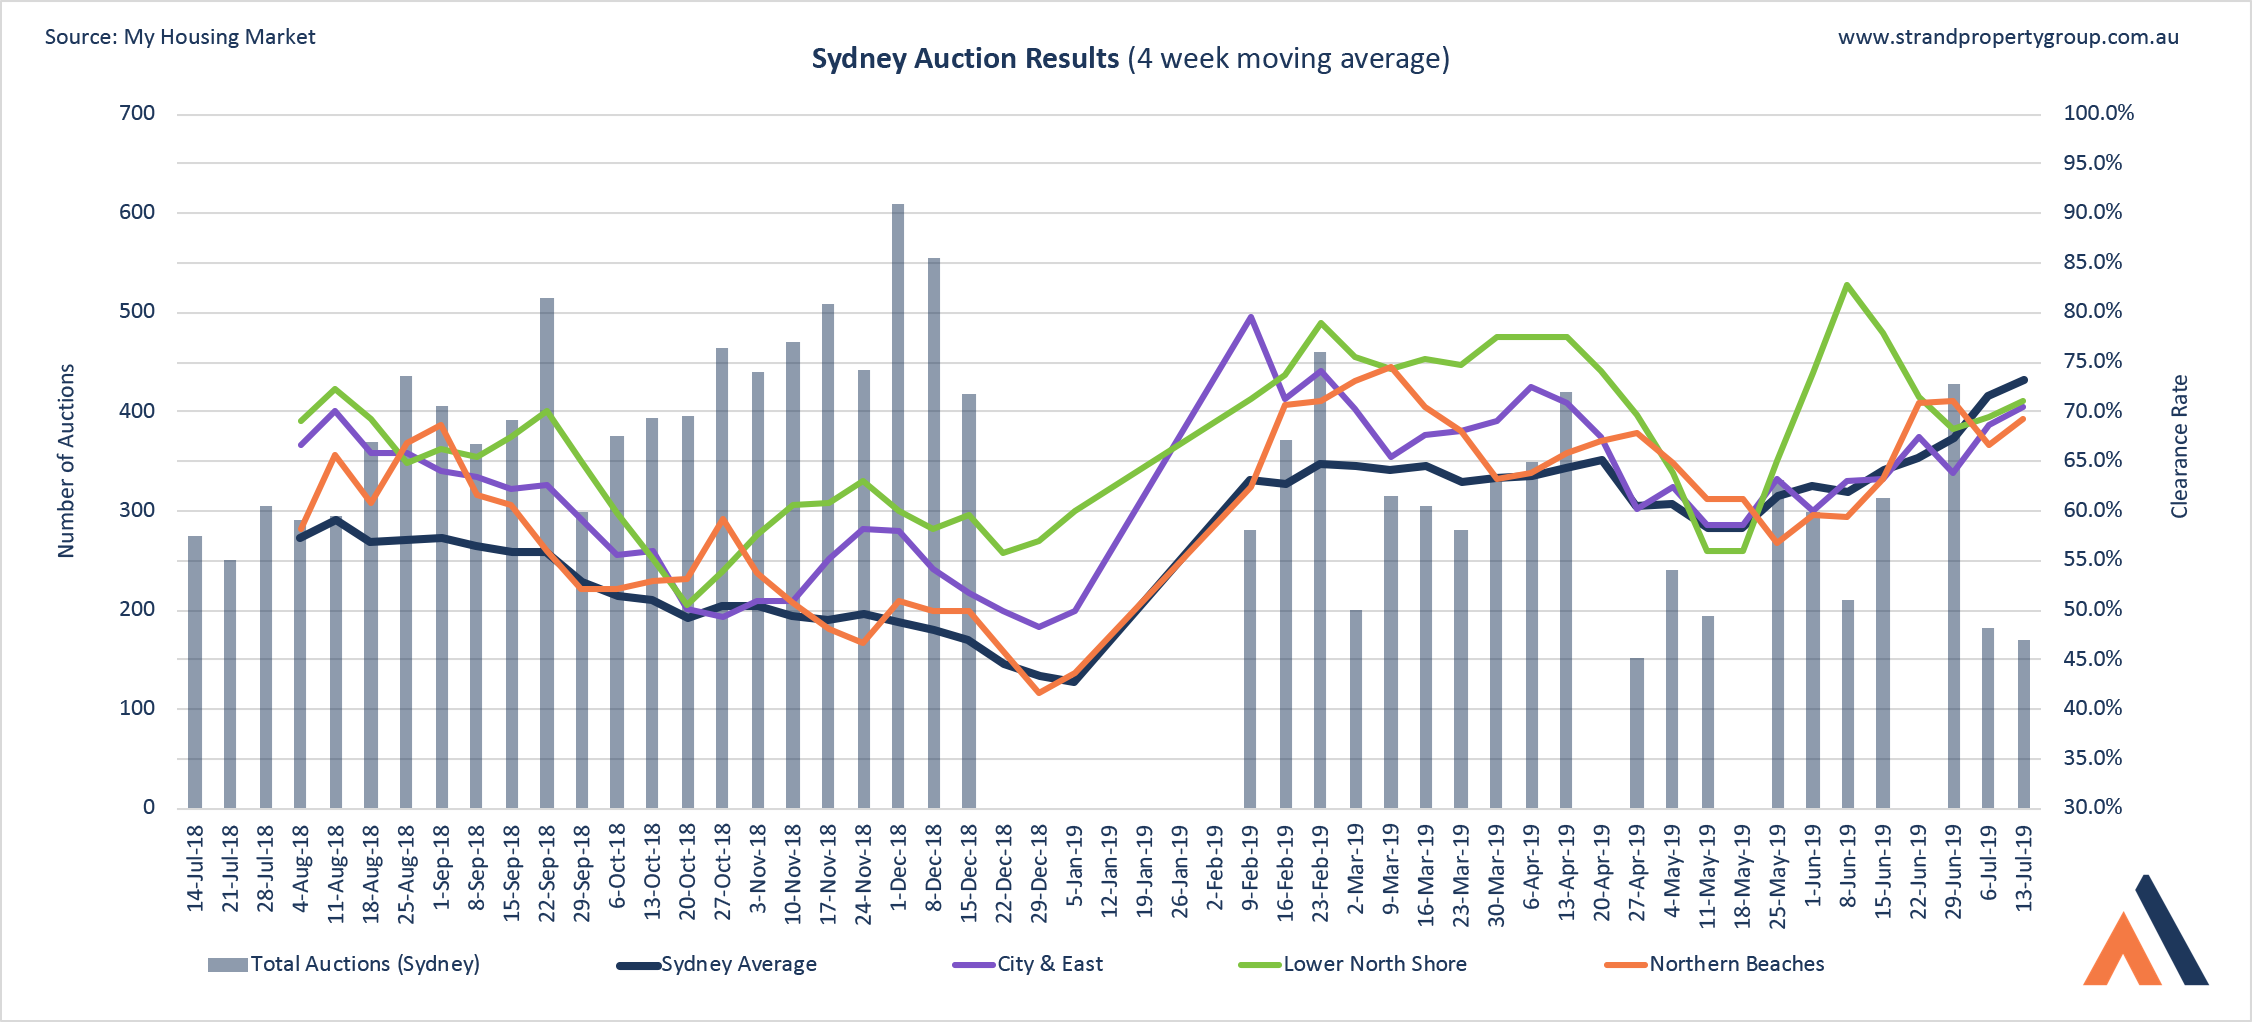 Sydney Auction Results - 13 JUL 2019